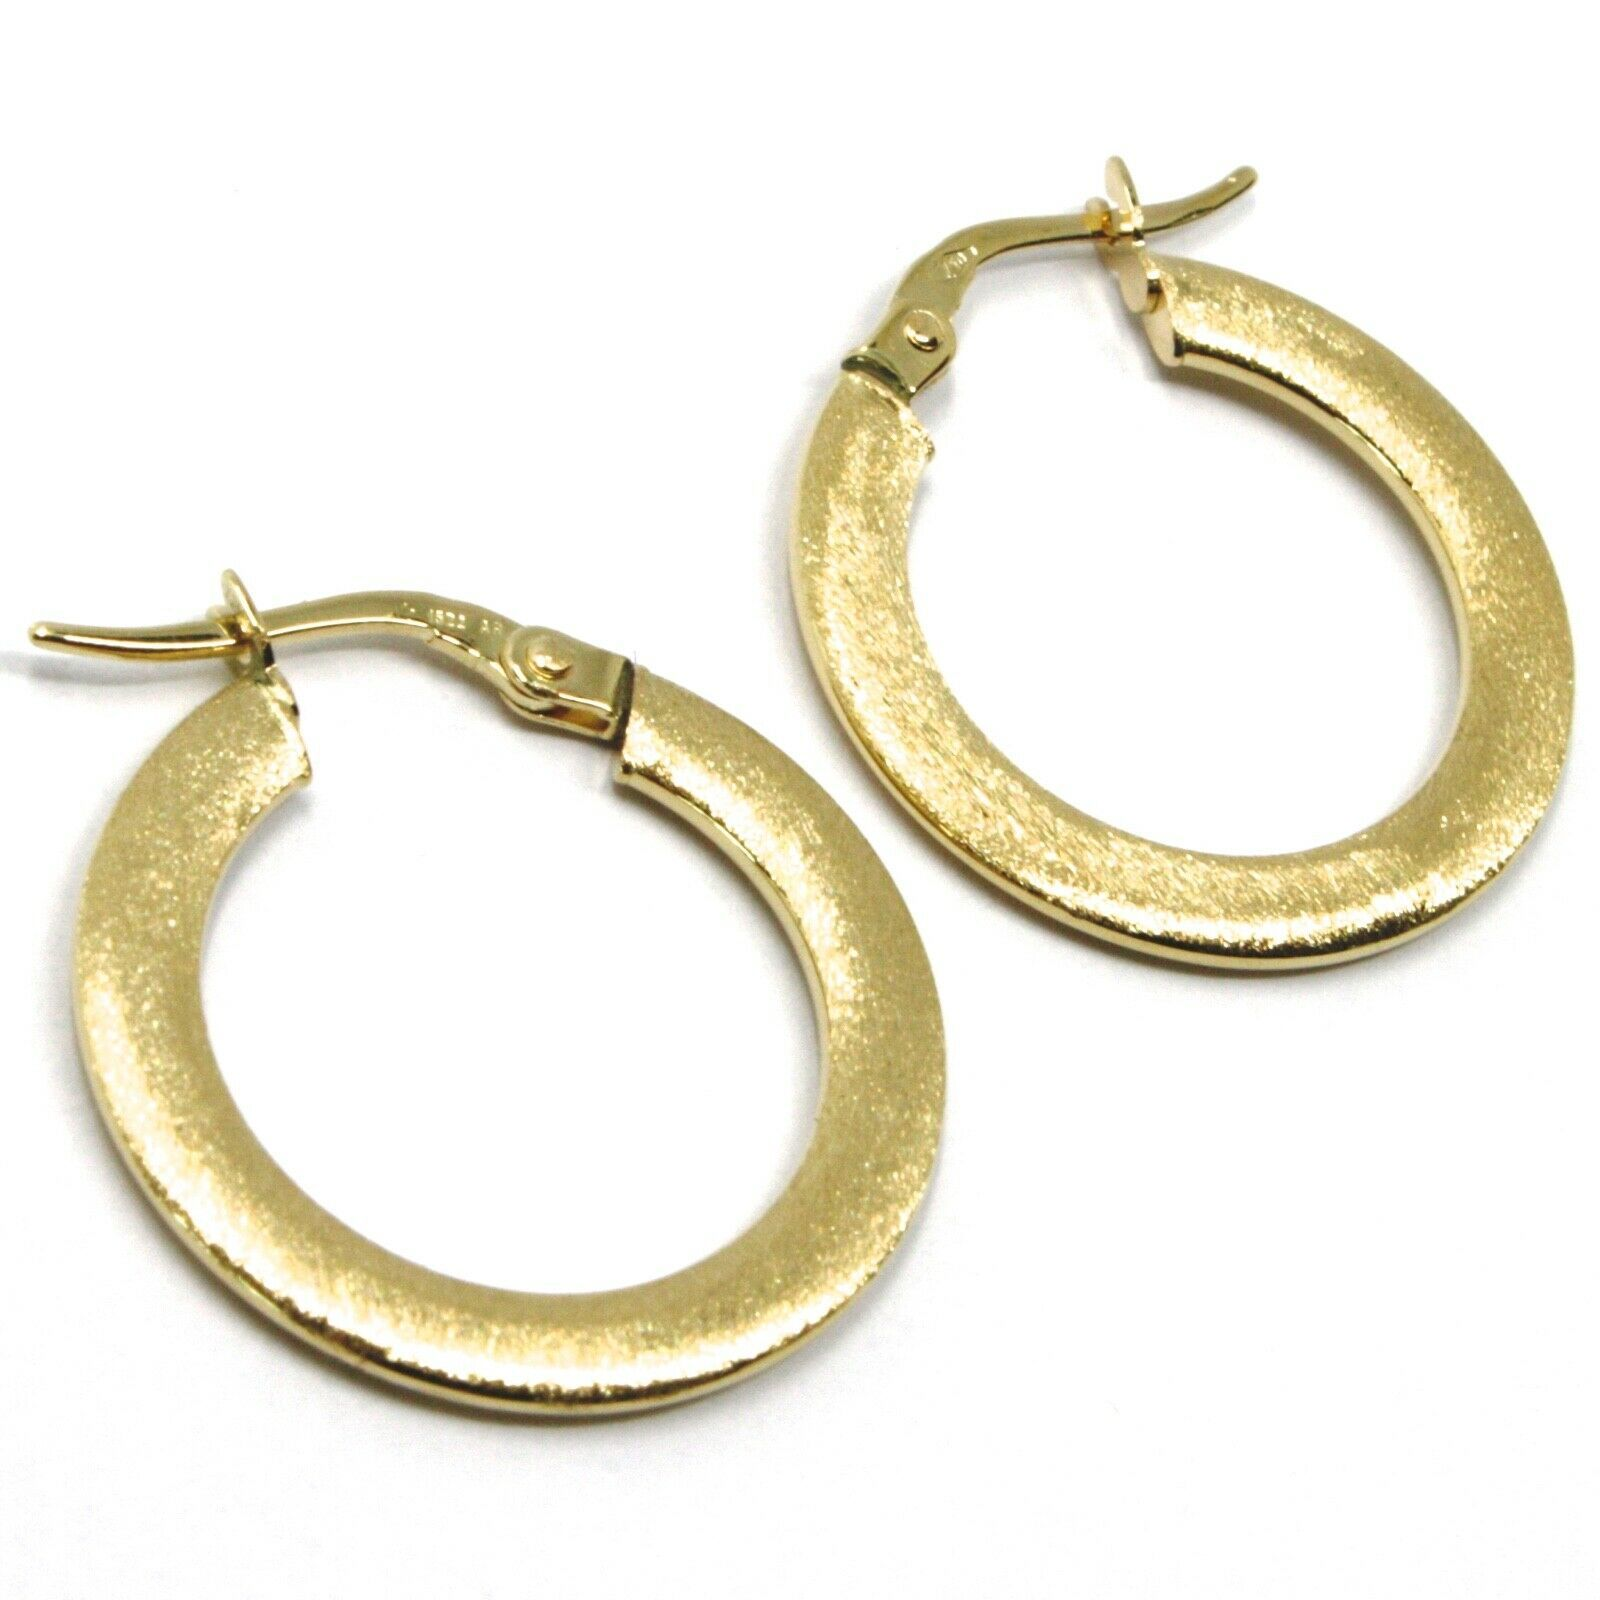 18K YELLOW GOLD CIRCLE HOOPS 3x1mm, EARRINGS 20mm, DOUBLE FACE SMOOTH & SATIN